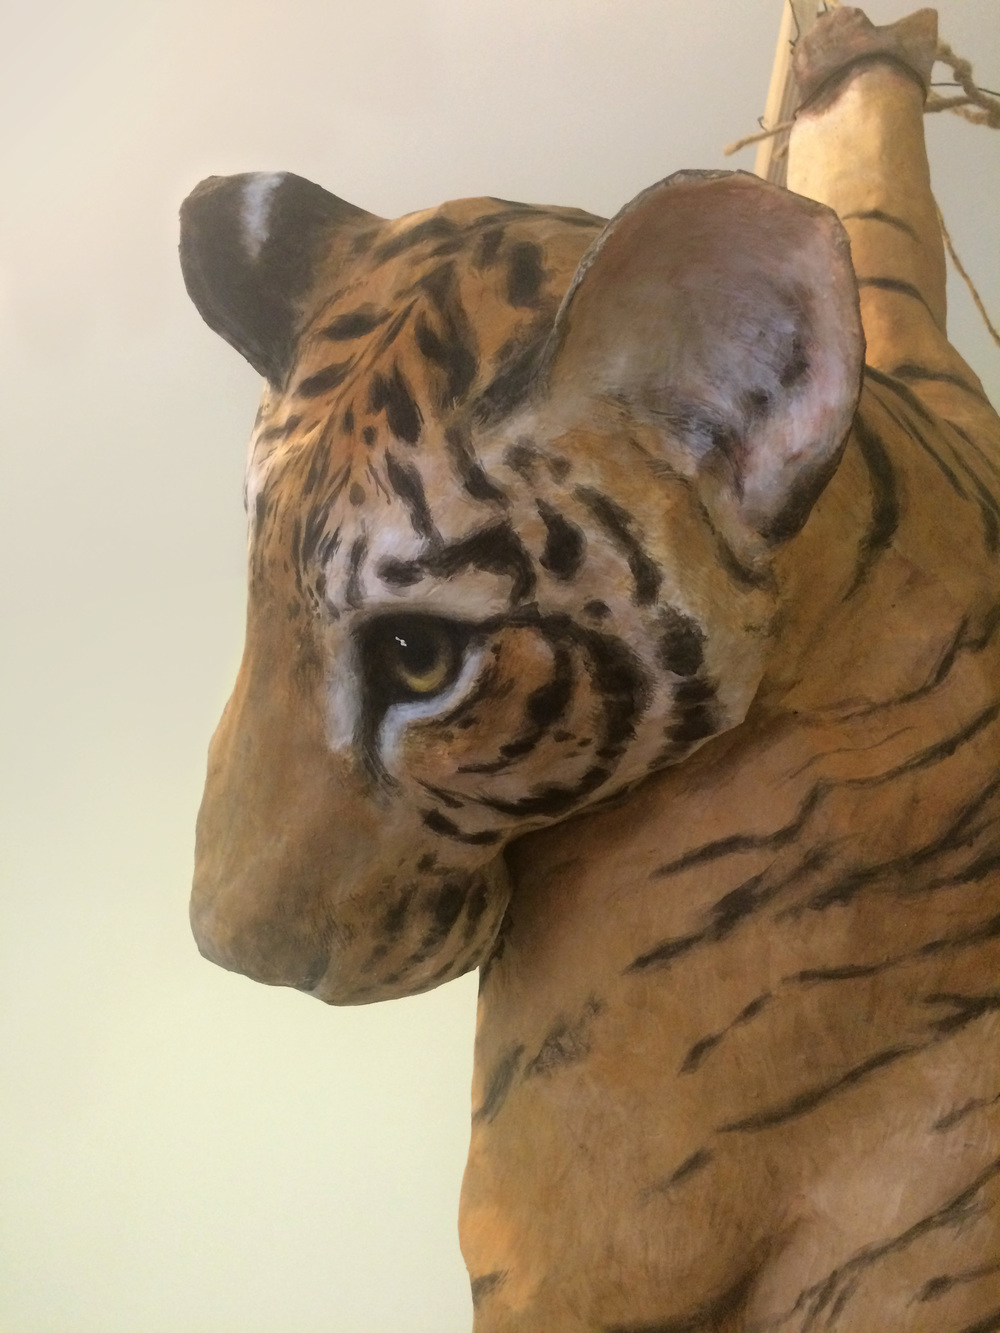 Tigers are hunted as trophies and kept as pets by people around the world.  This piece, depicting an ensnared, juvenile tiger, is intended to address directly the poaching of wild tigers and indirectly the exploitation of captive tigers and the trade in tiger parts.   (Emily Schnall sculpture)